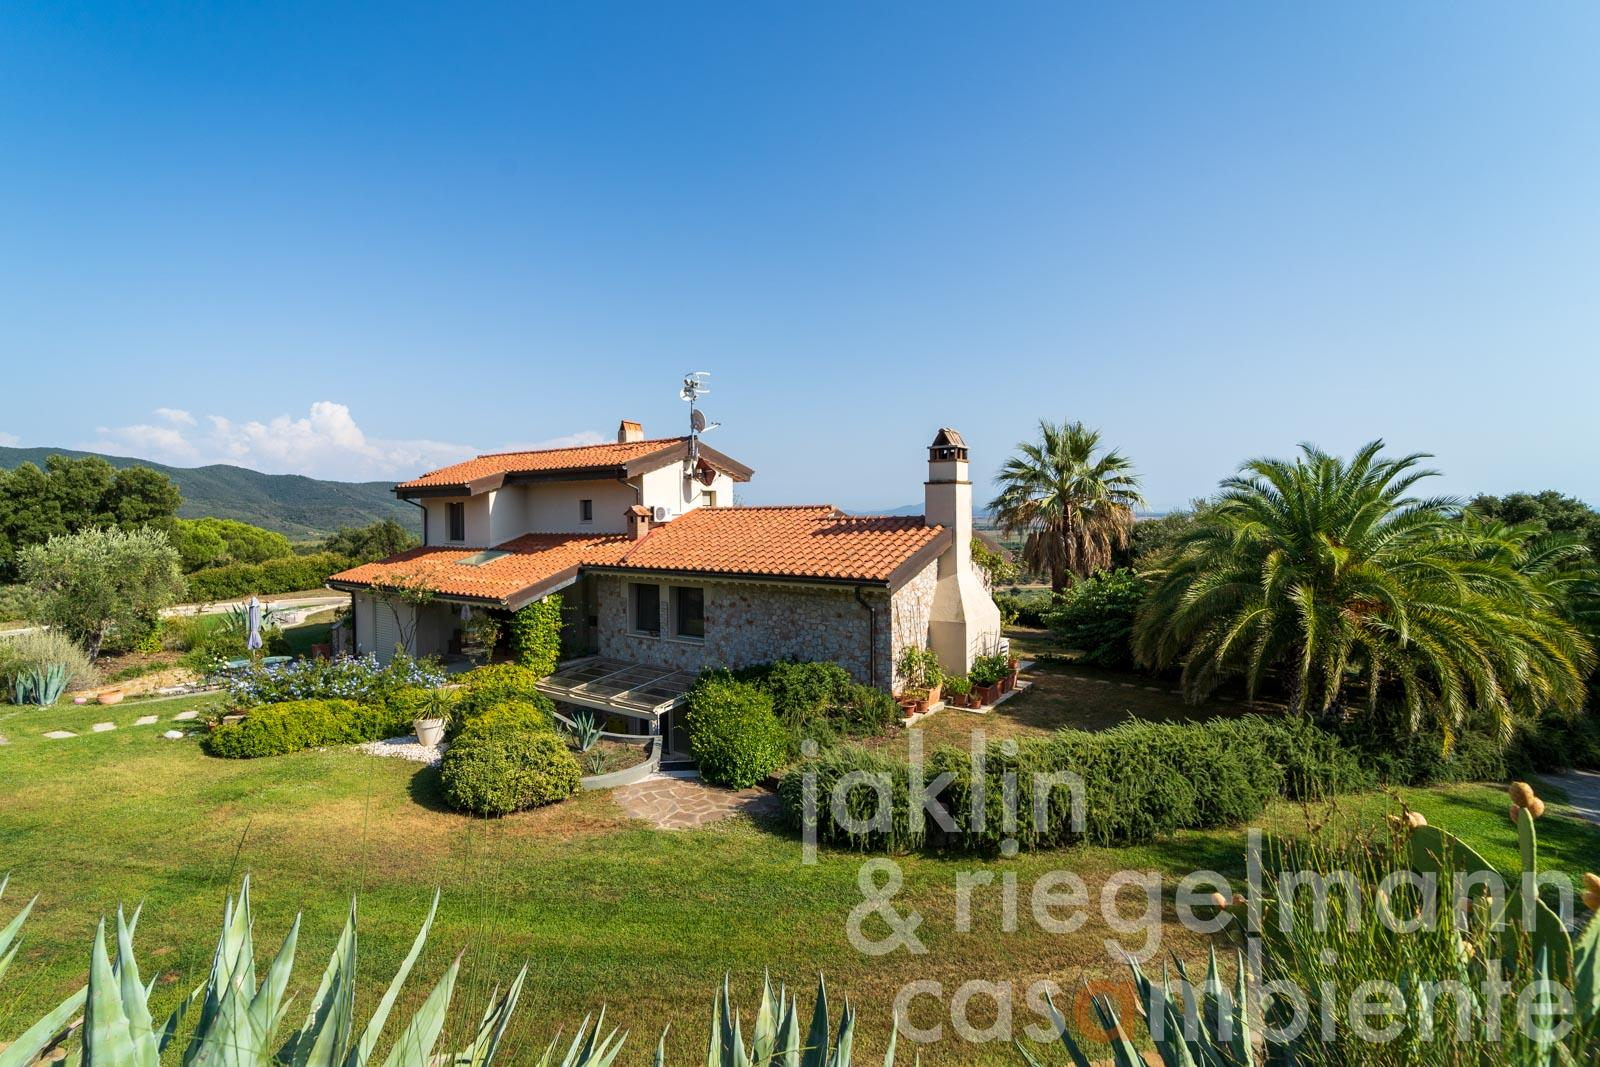 Beautifully situated country house with palm trees and sea view near Castiglione della Pescaia on the Tyrrhenian Sea